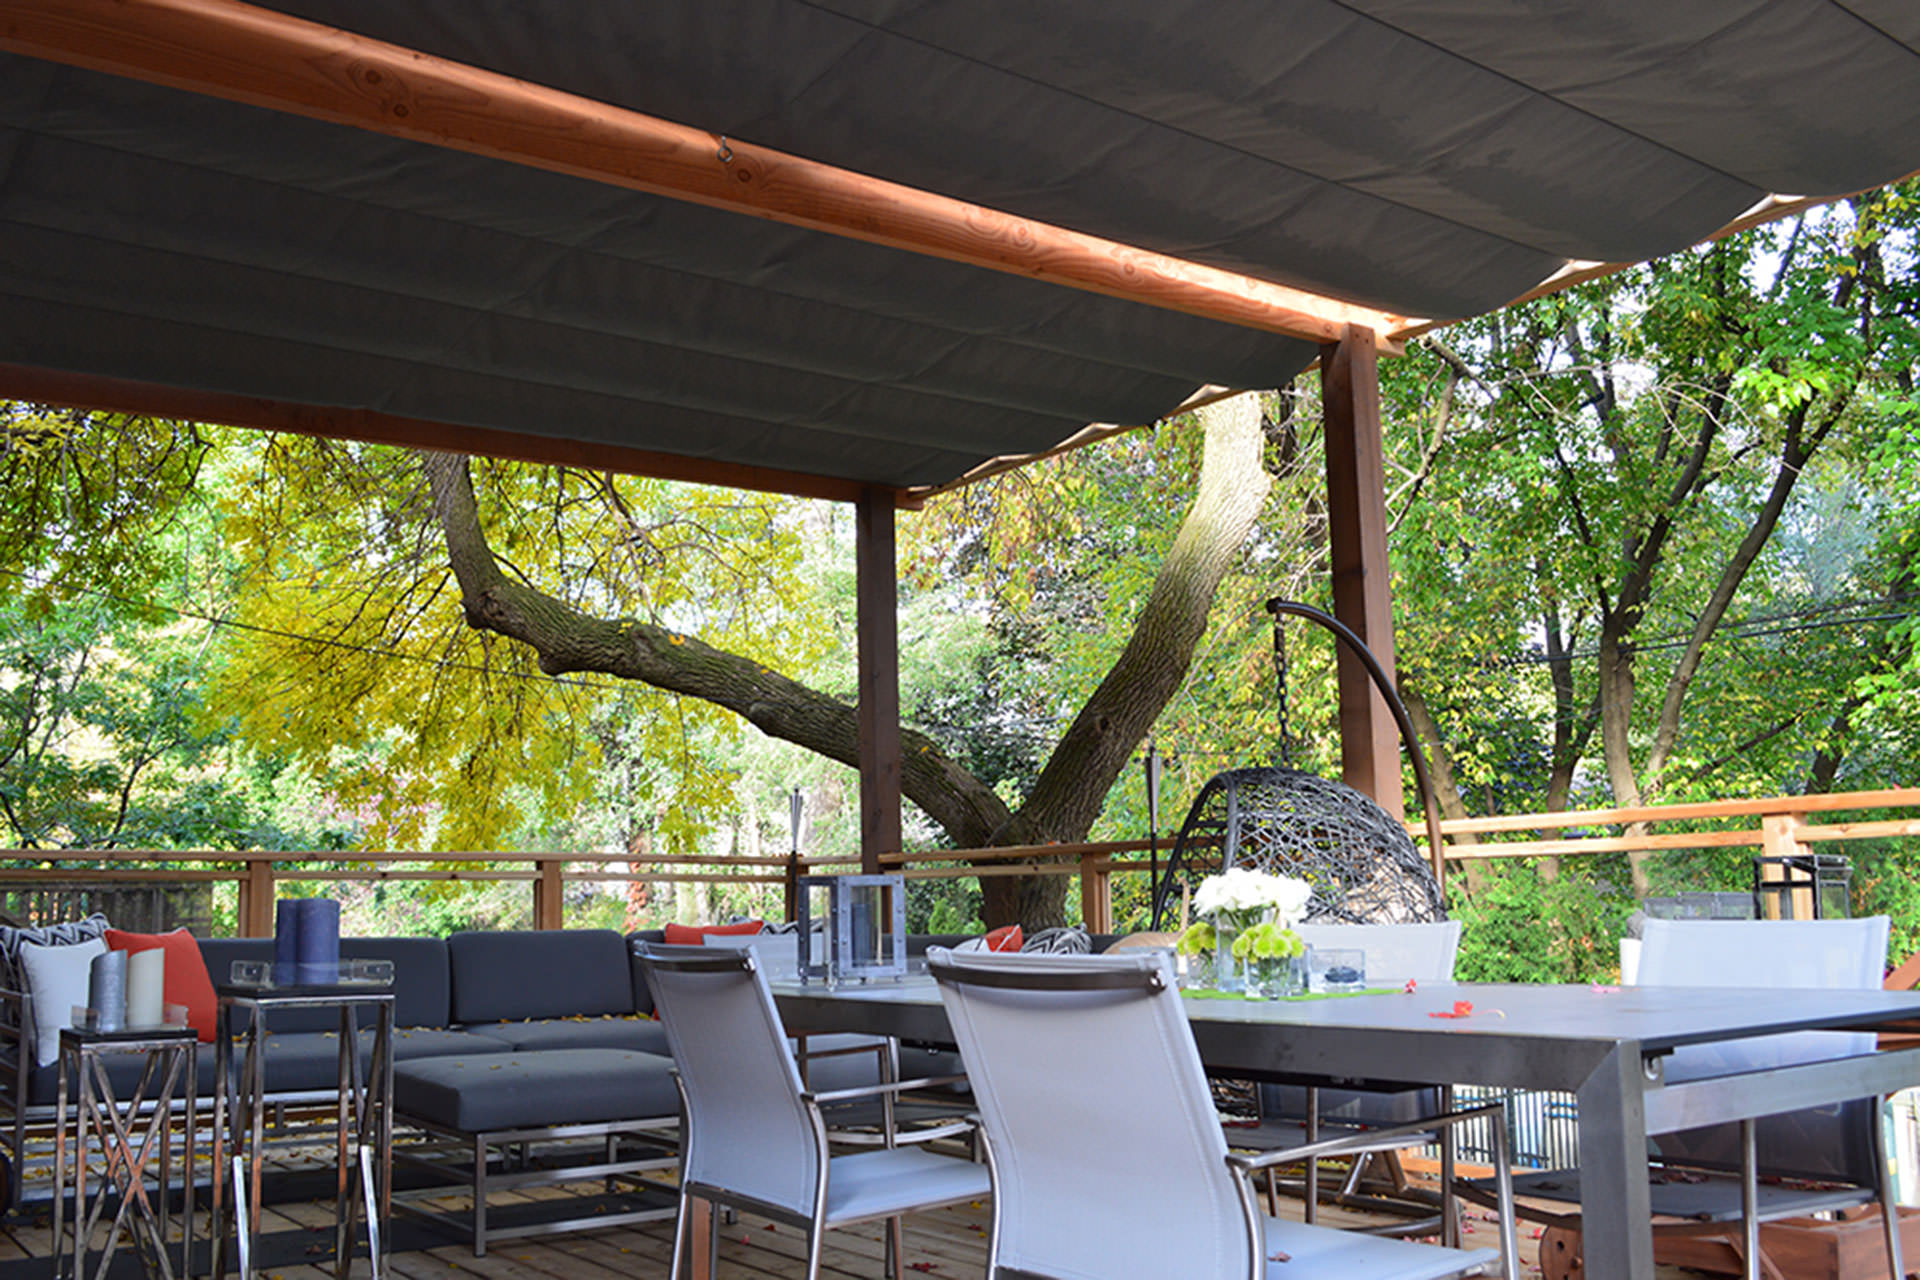 Keep Cool with These Five Patio Shade Ideas | ShadeFX Canopies on Patio With Deck Ideas id=37905